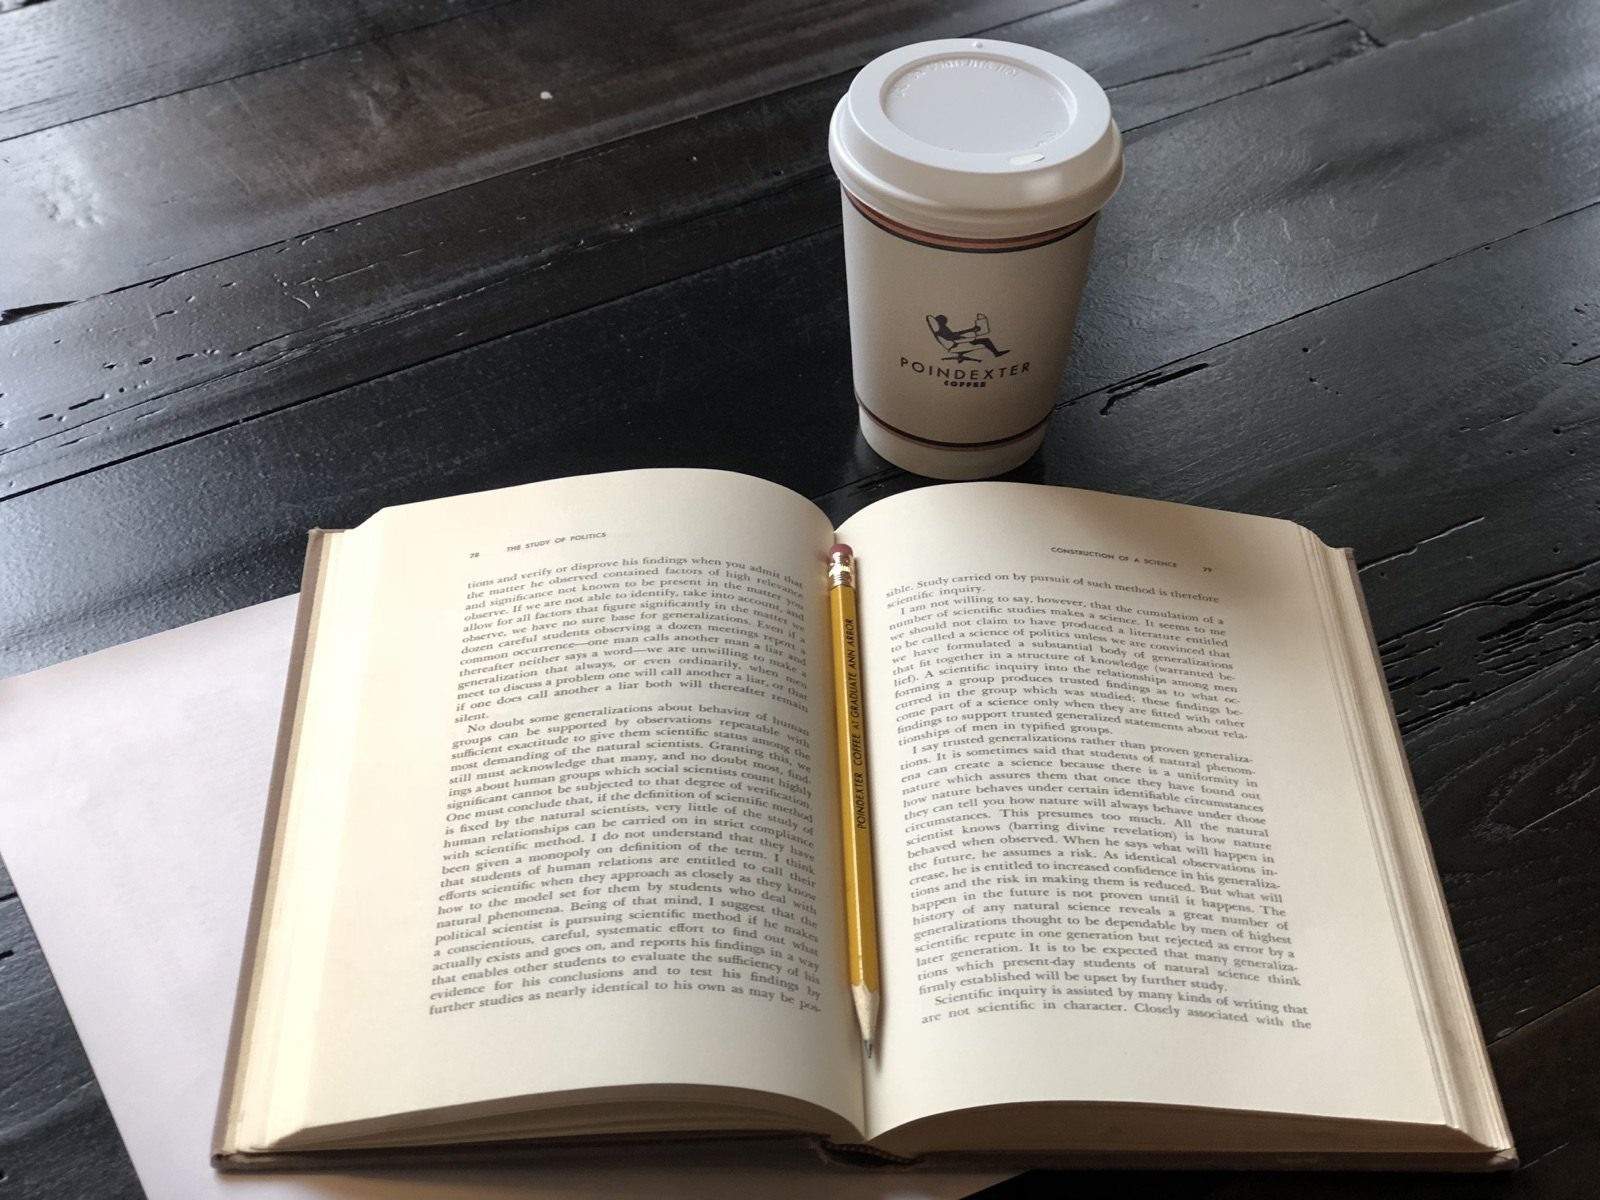 Text Book and Poindexter Coffee Cup